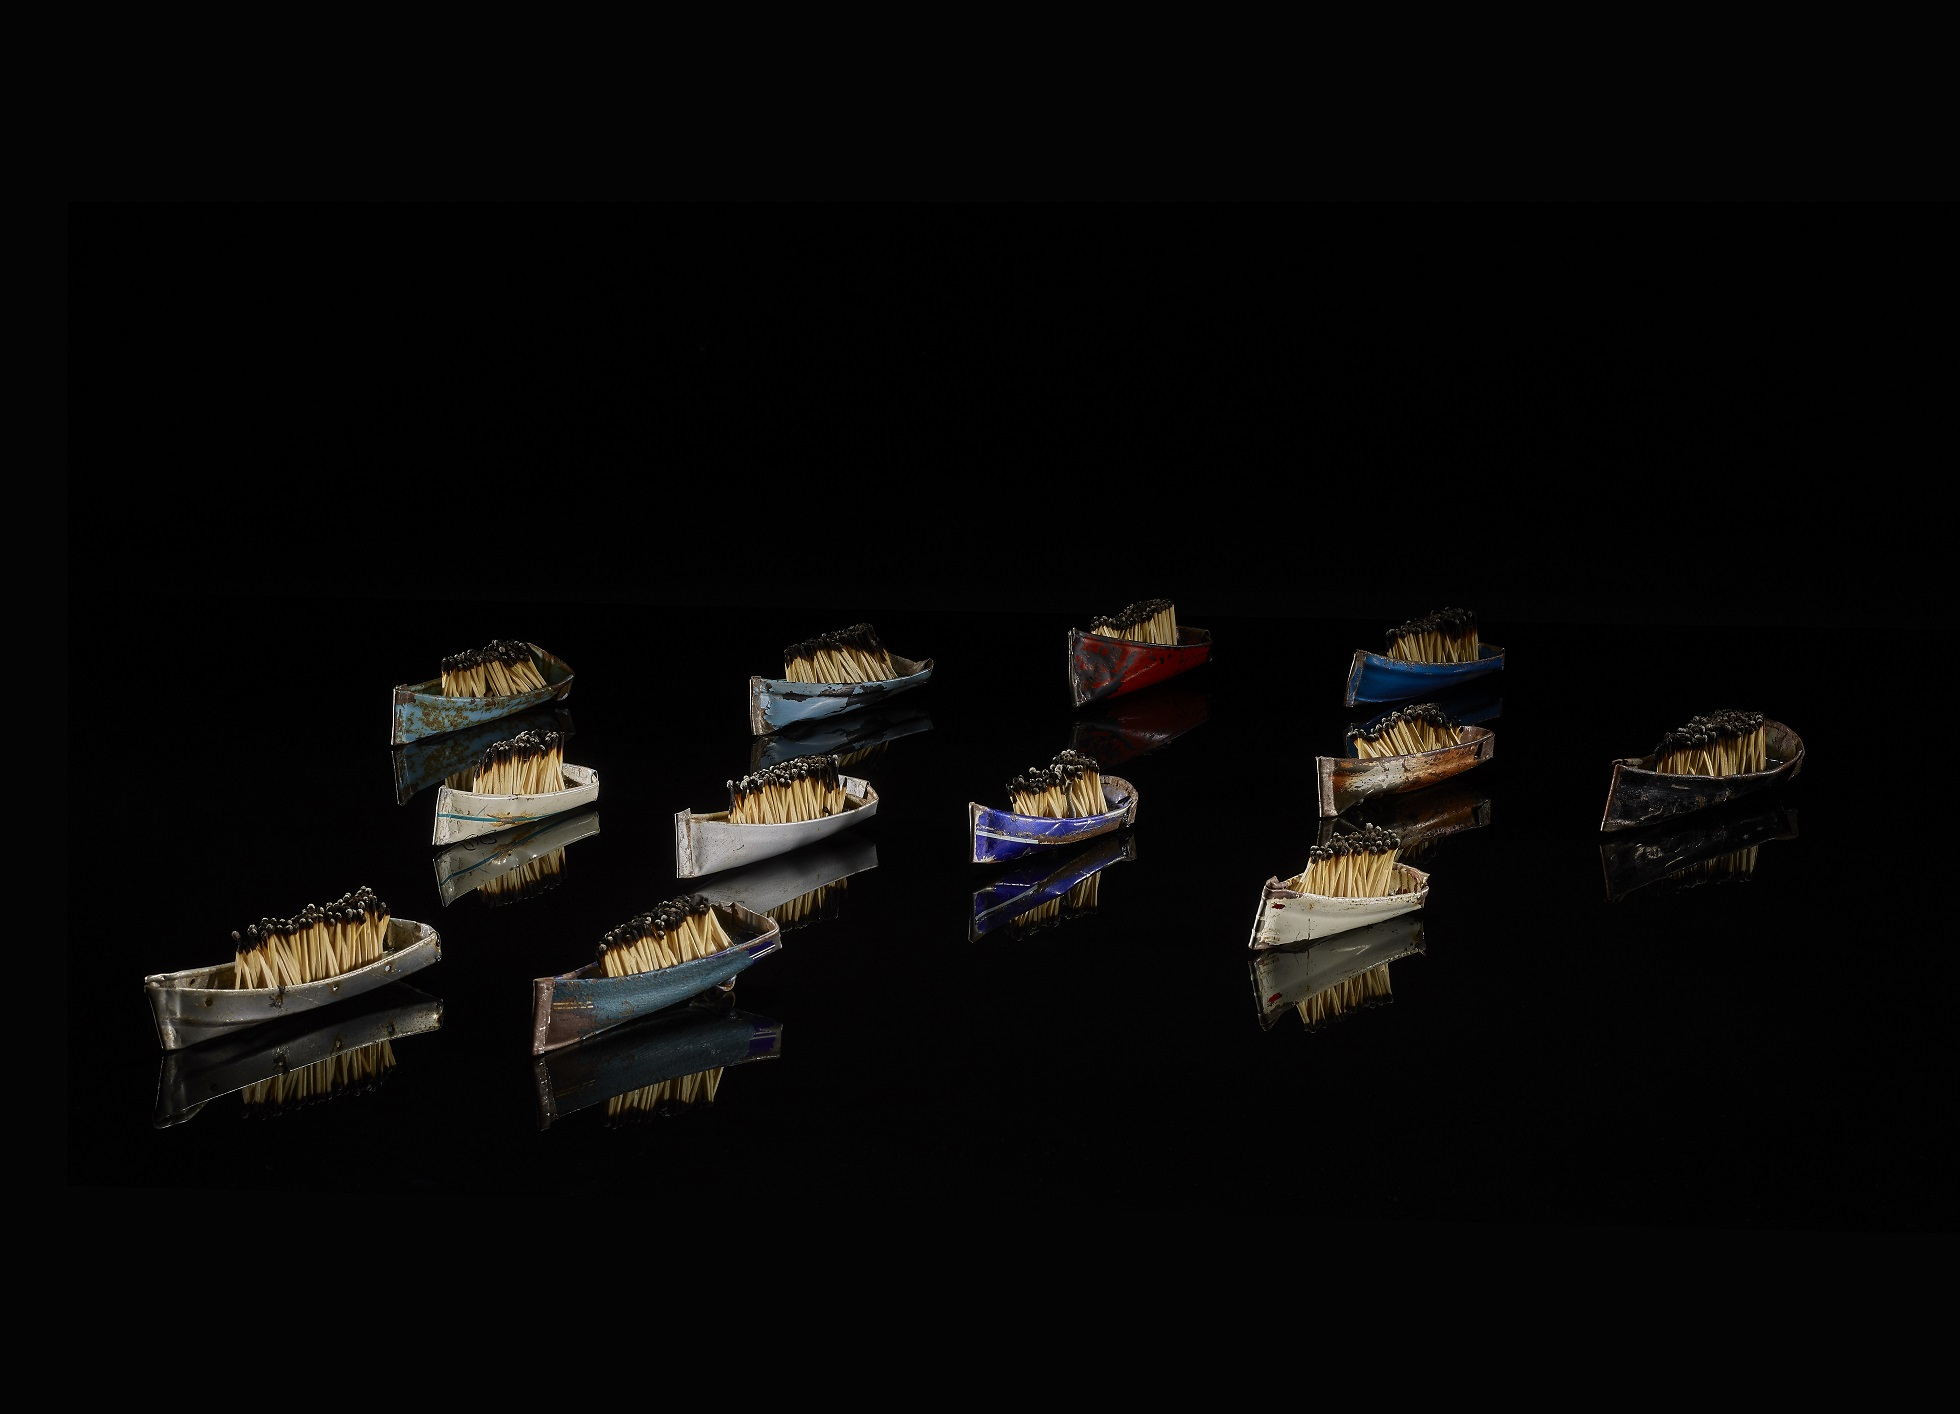 12 miniature boats made from recycled bicycle mudguards, extinguished matches and clear resin are displayed in a flotilla on a black background which reflects the boats as though it was water.